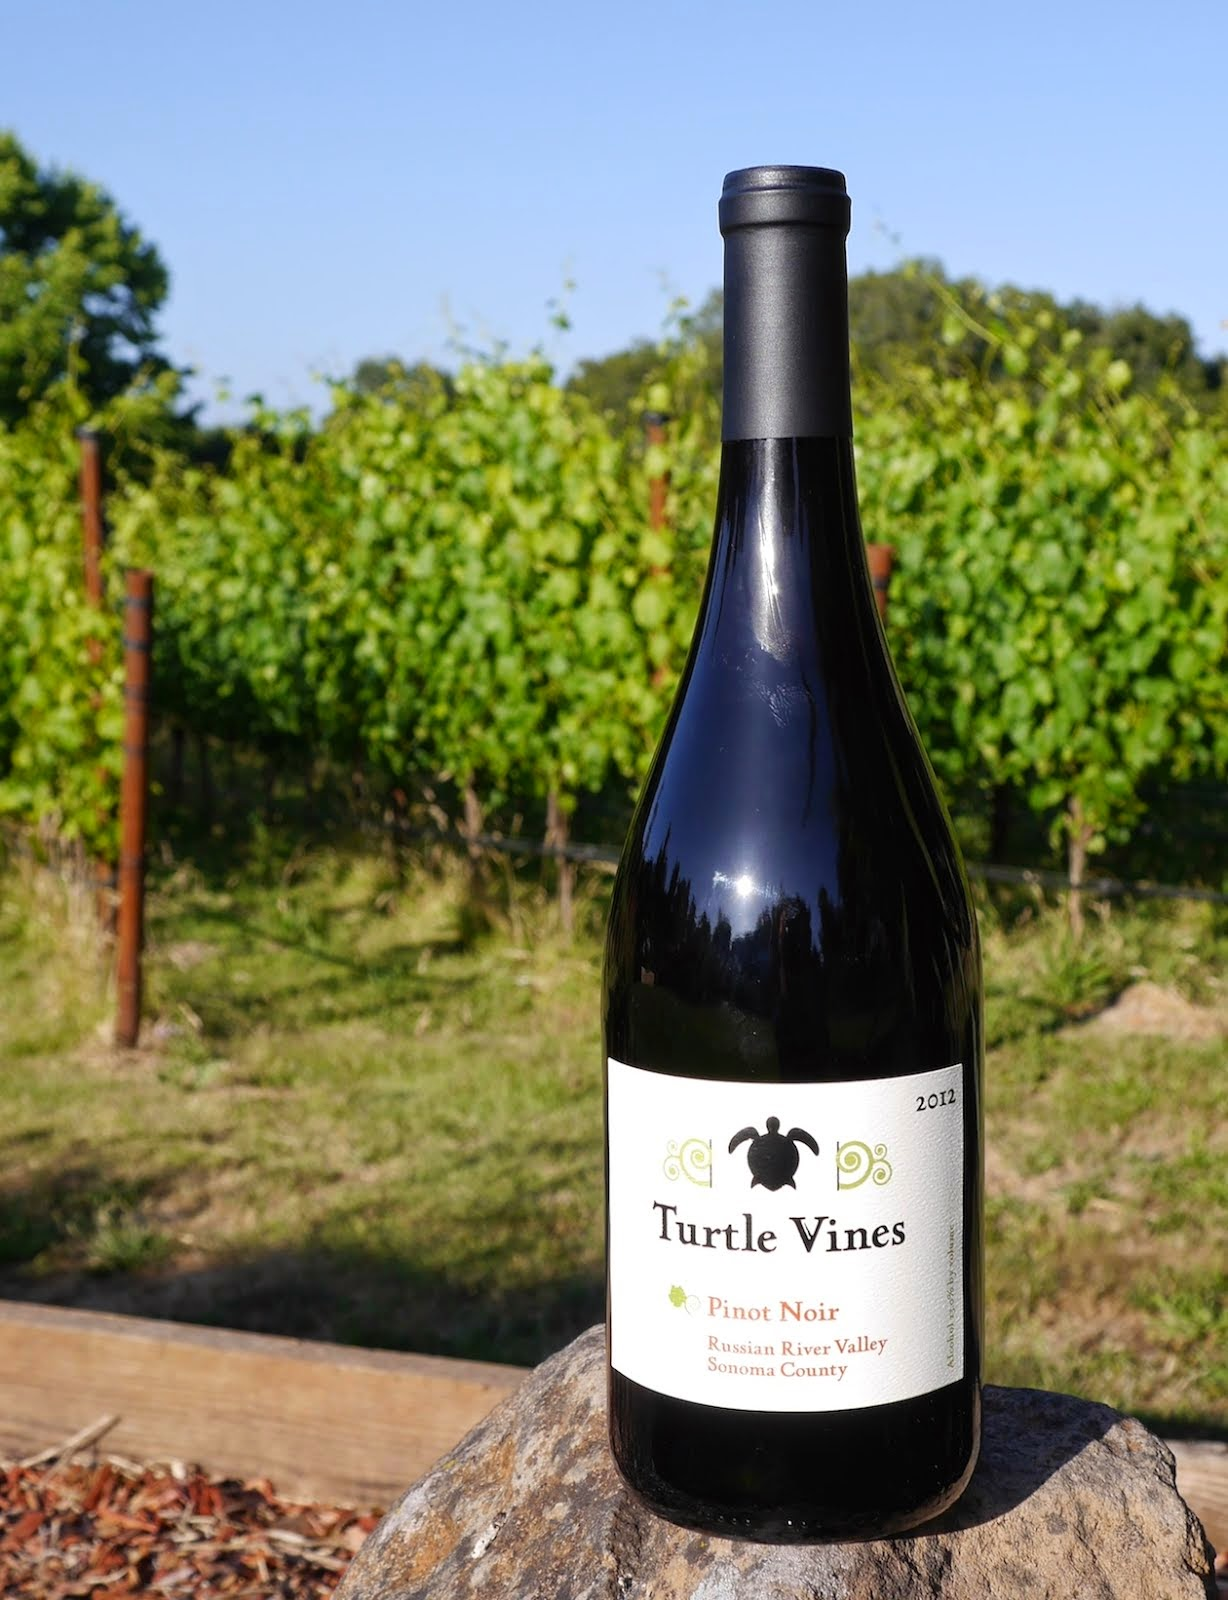 vegan pinot noir from Turtle Vines